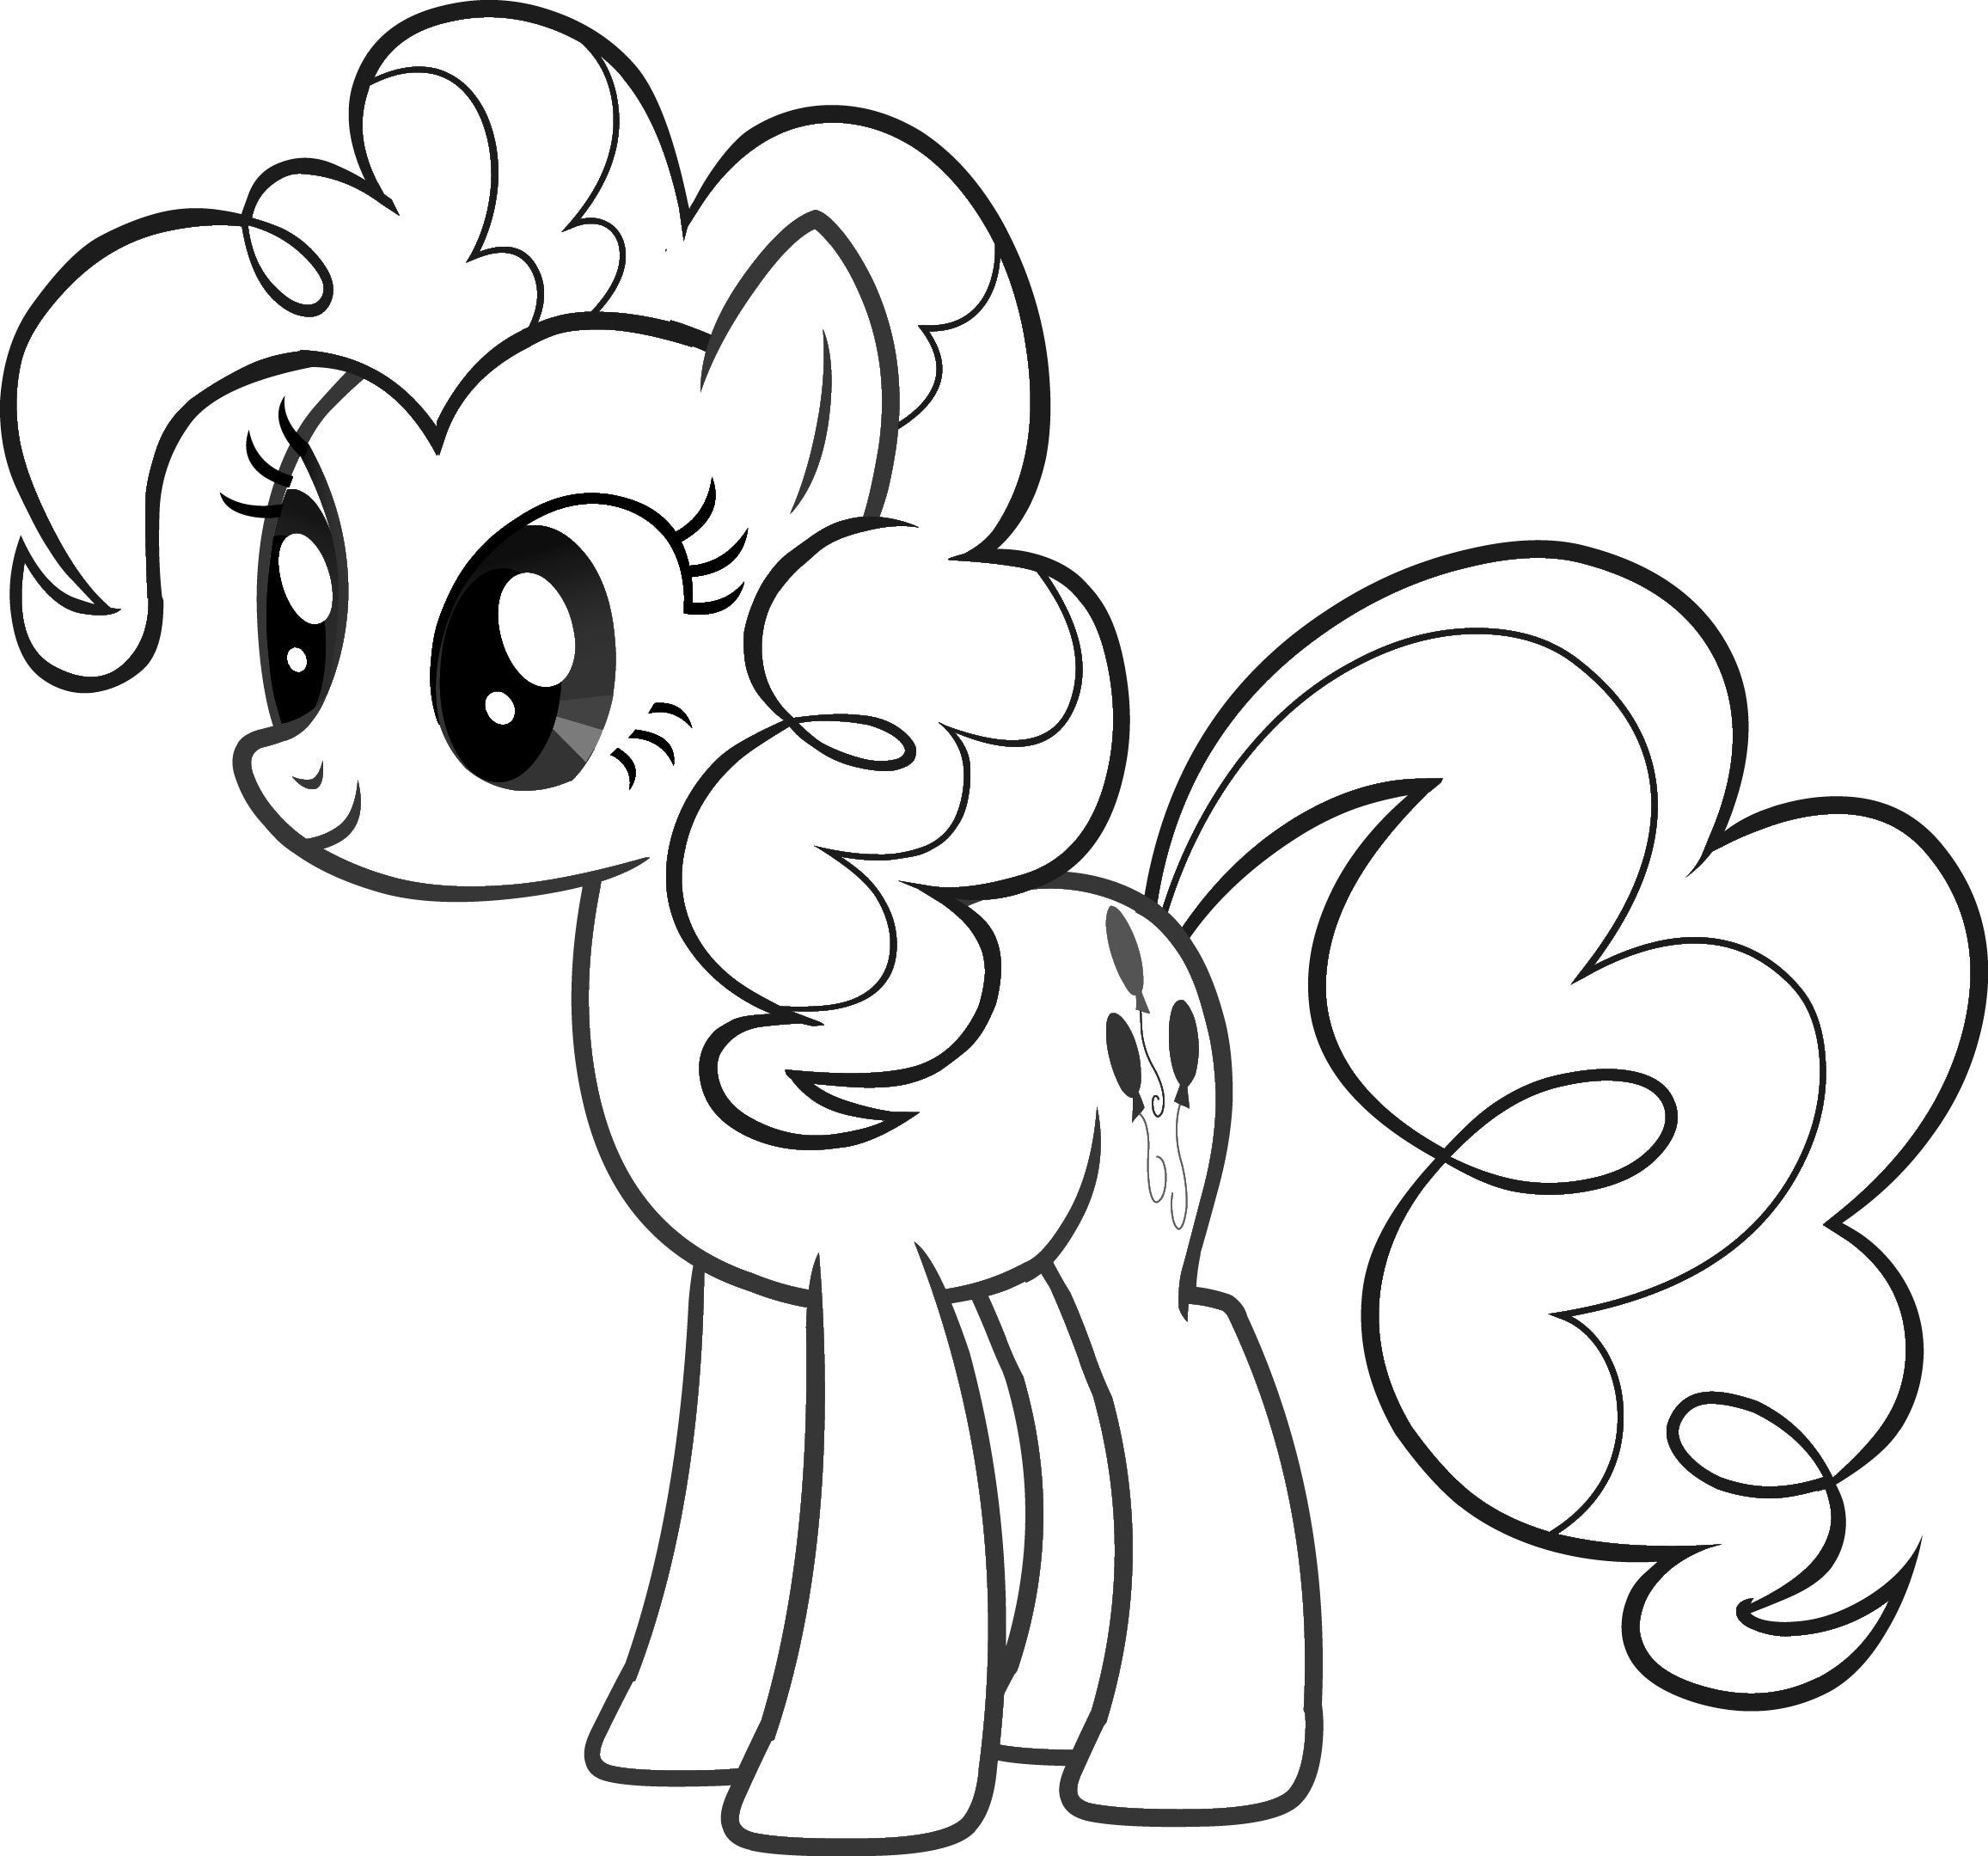 My Little Pony Lyra Coloring Pages : My little pony coloring pages